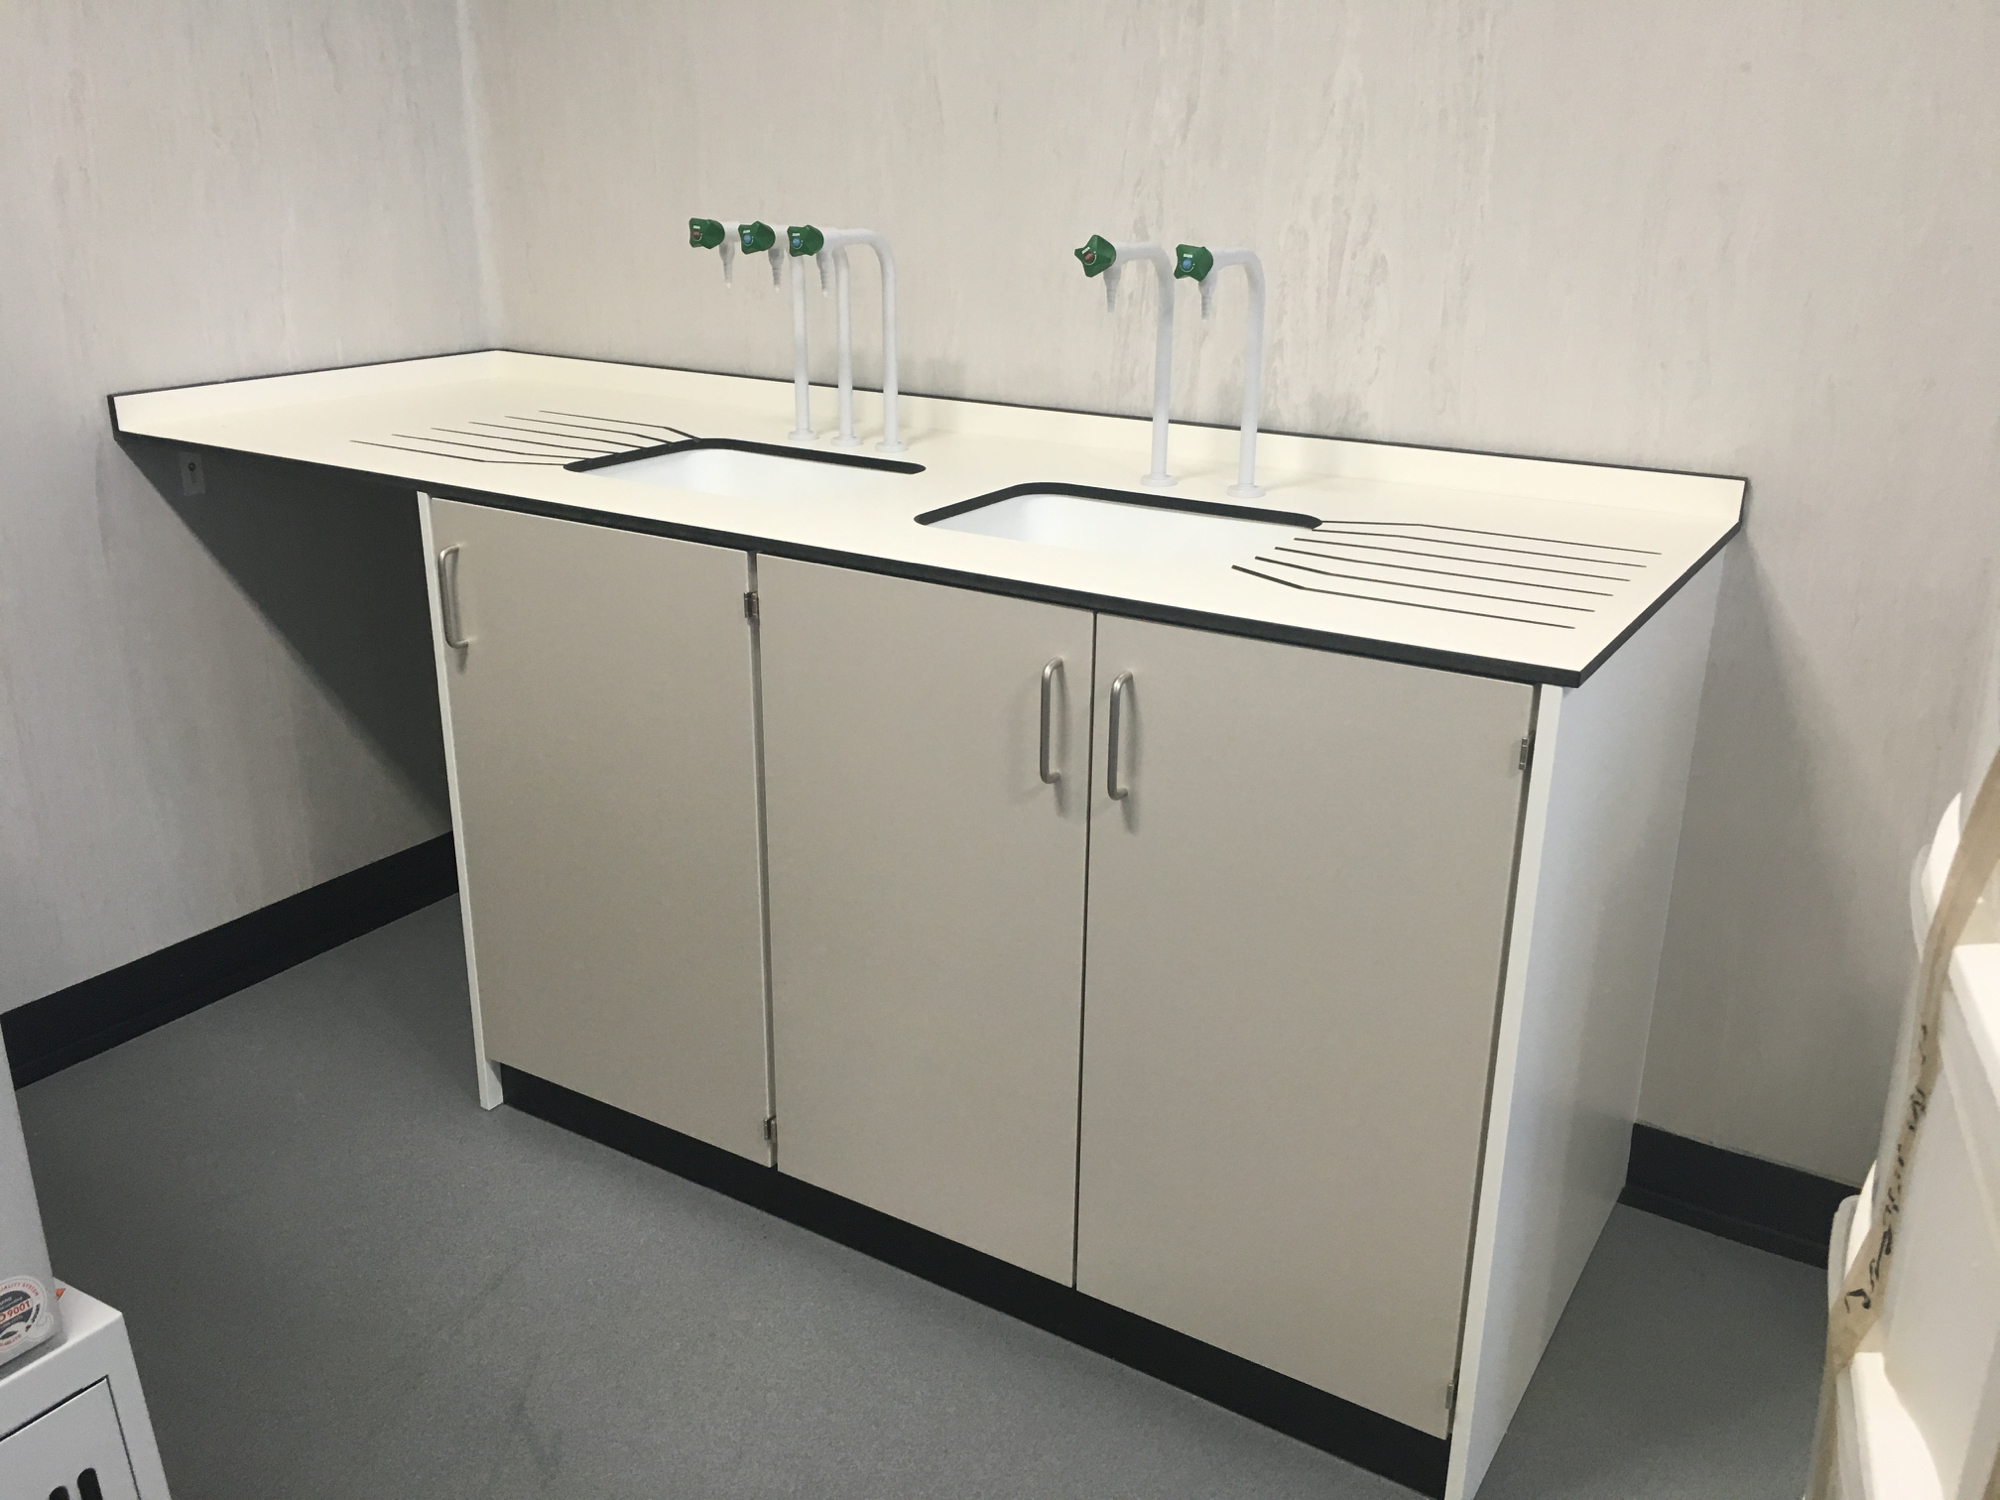 University of bradford chemistry laboratory furniture for Furniture keighley